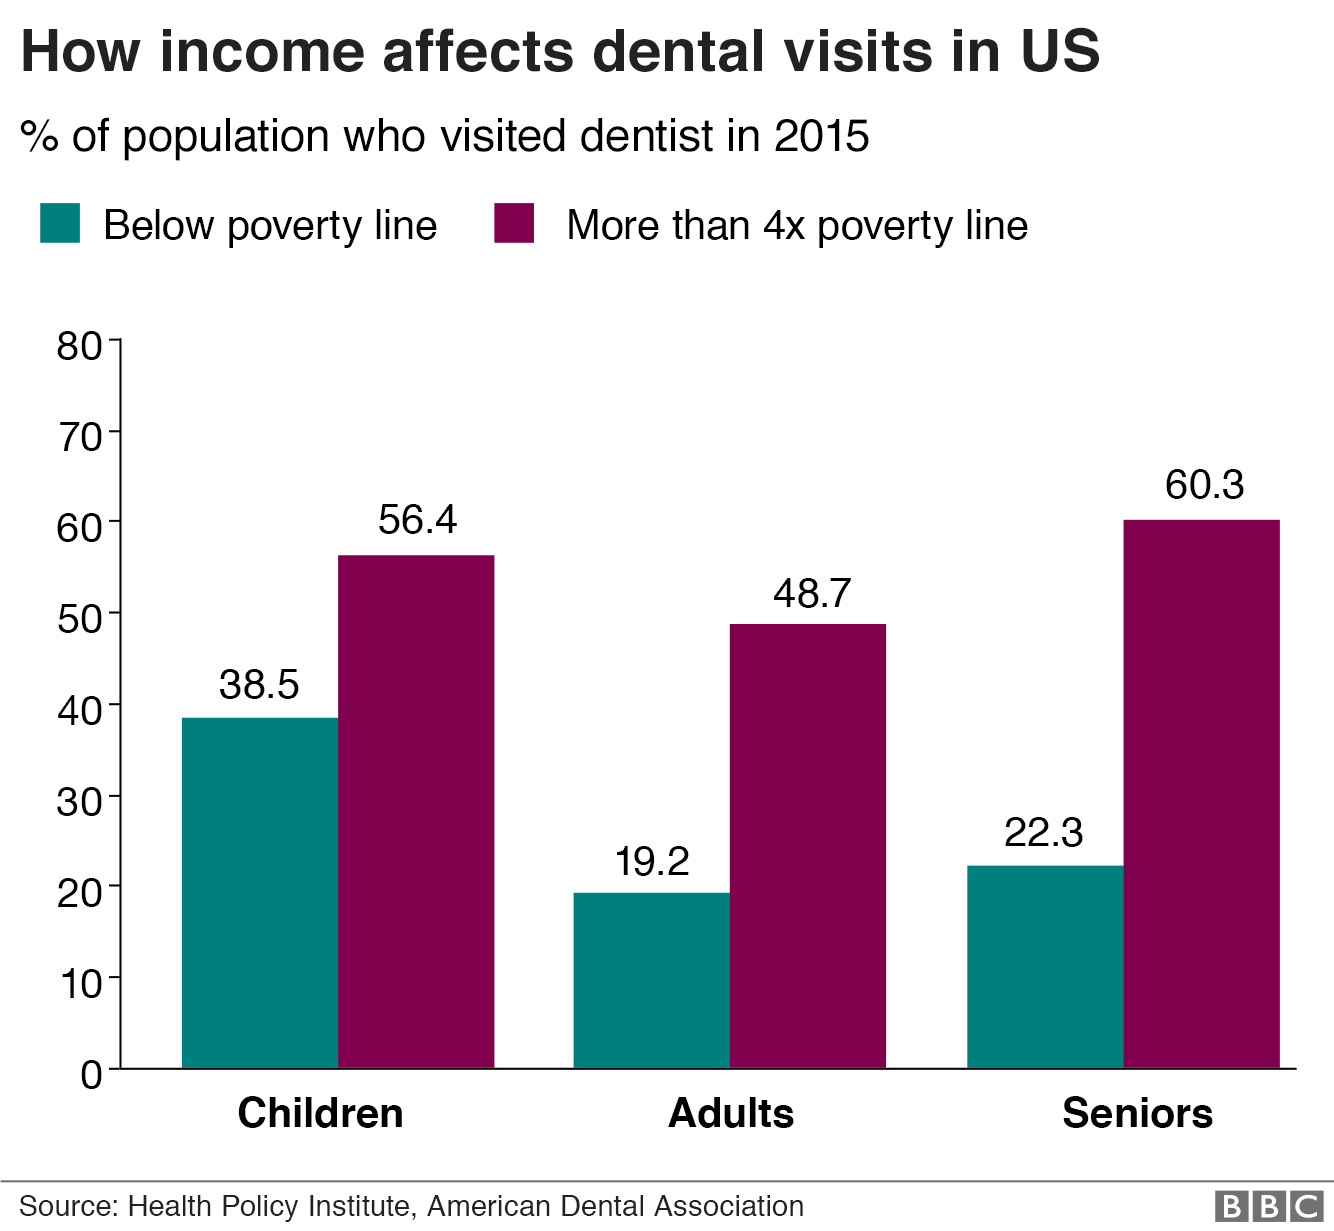 How income affects dental treatment in the US